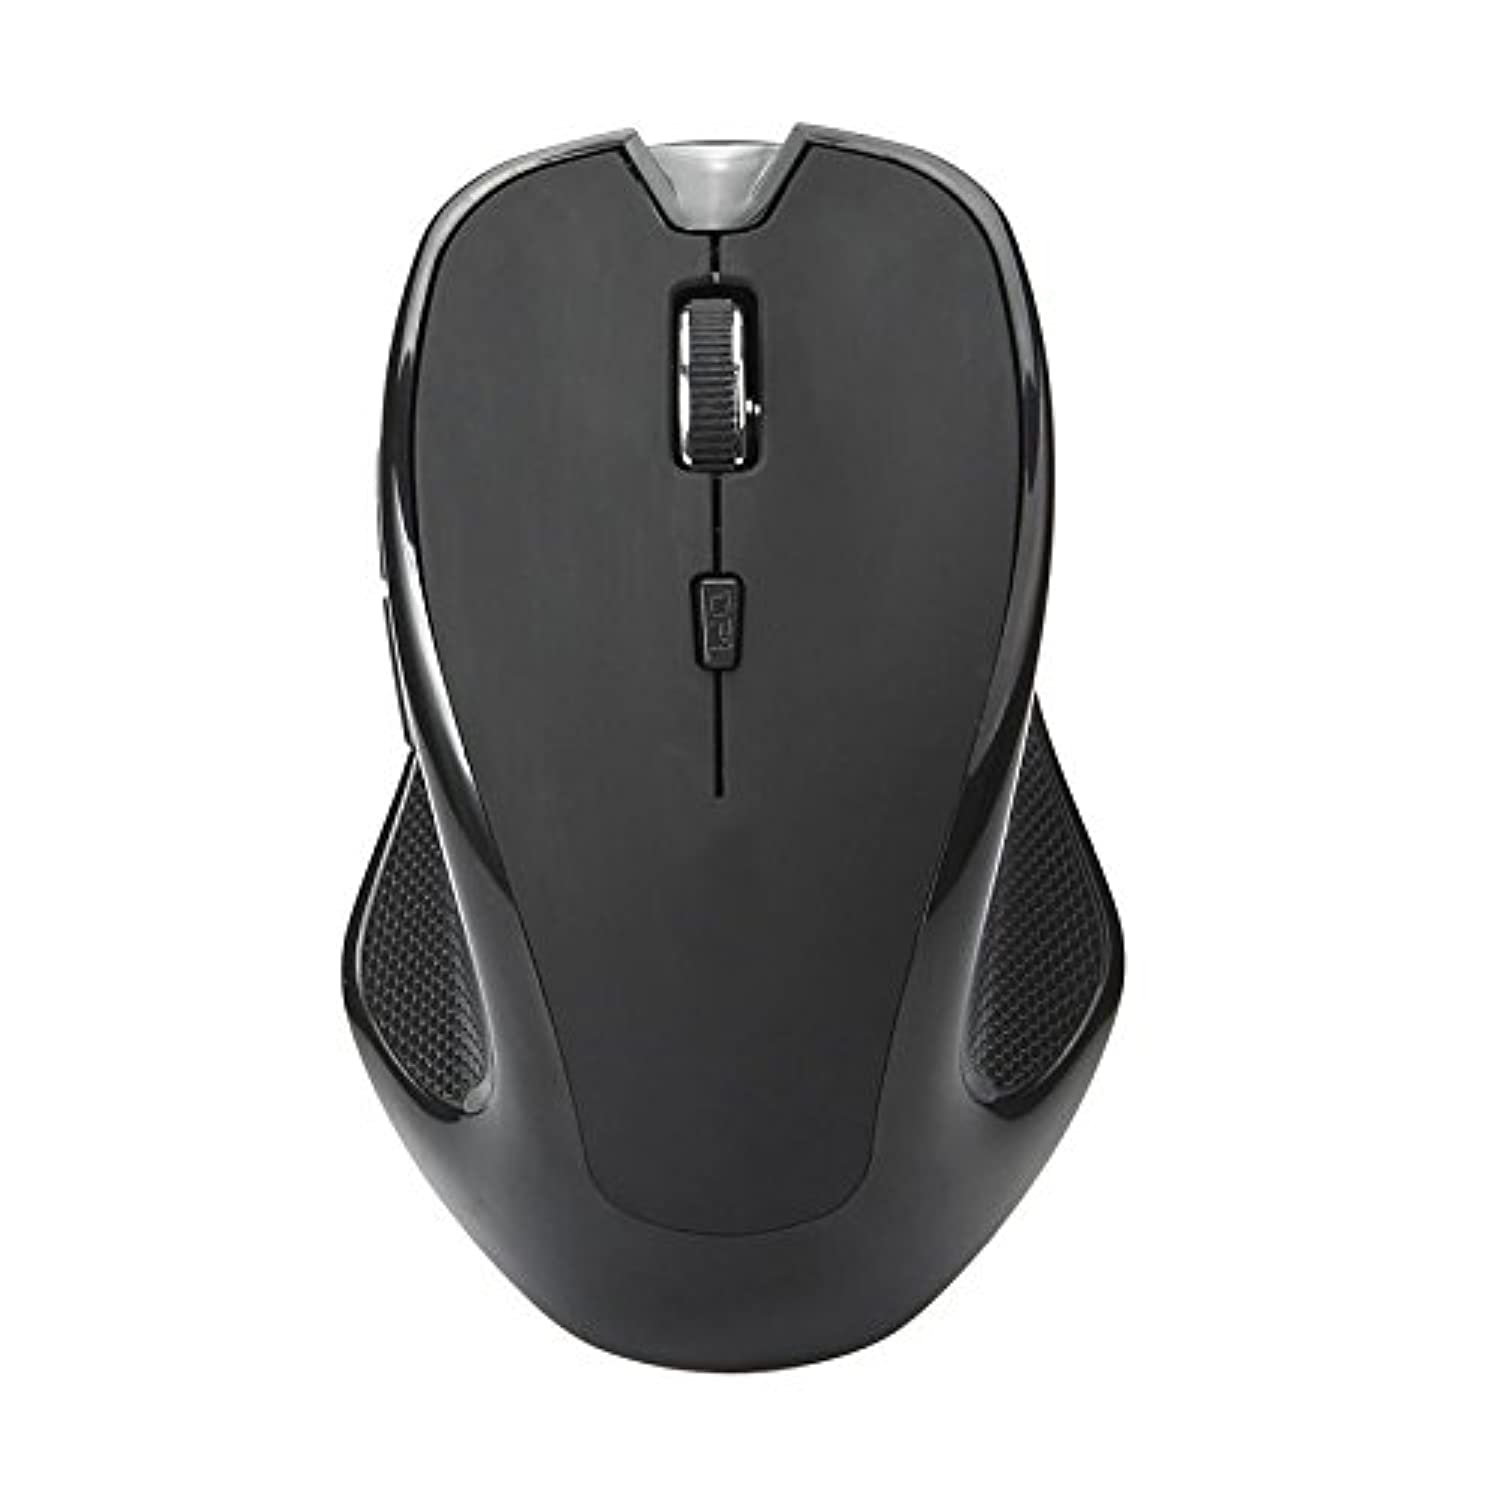 HAHAP Wireless Mobile Optical Mouse,Wireless Mini Bluetooth 3.0 6D 1600DPI Optical Gaming Mouse Mice Laptop,PC,Computer,Chromebook,MacBook,Notebook.